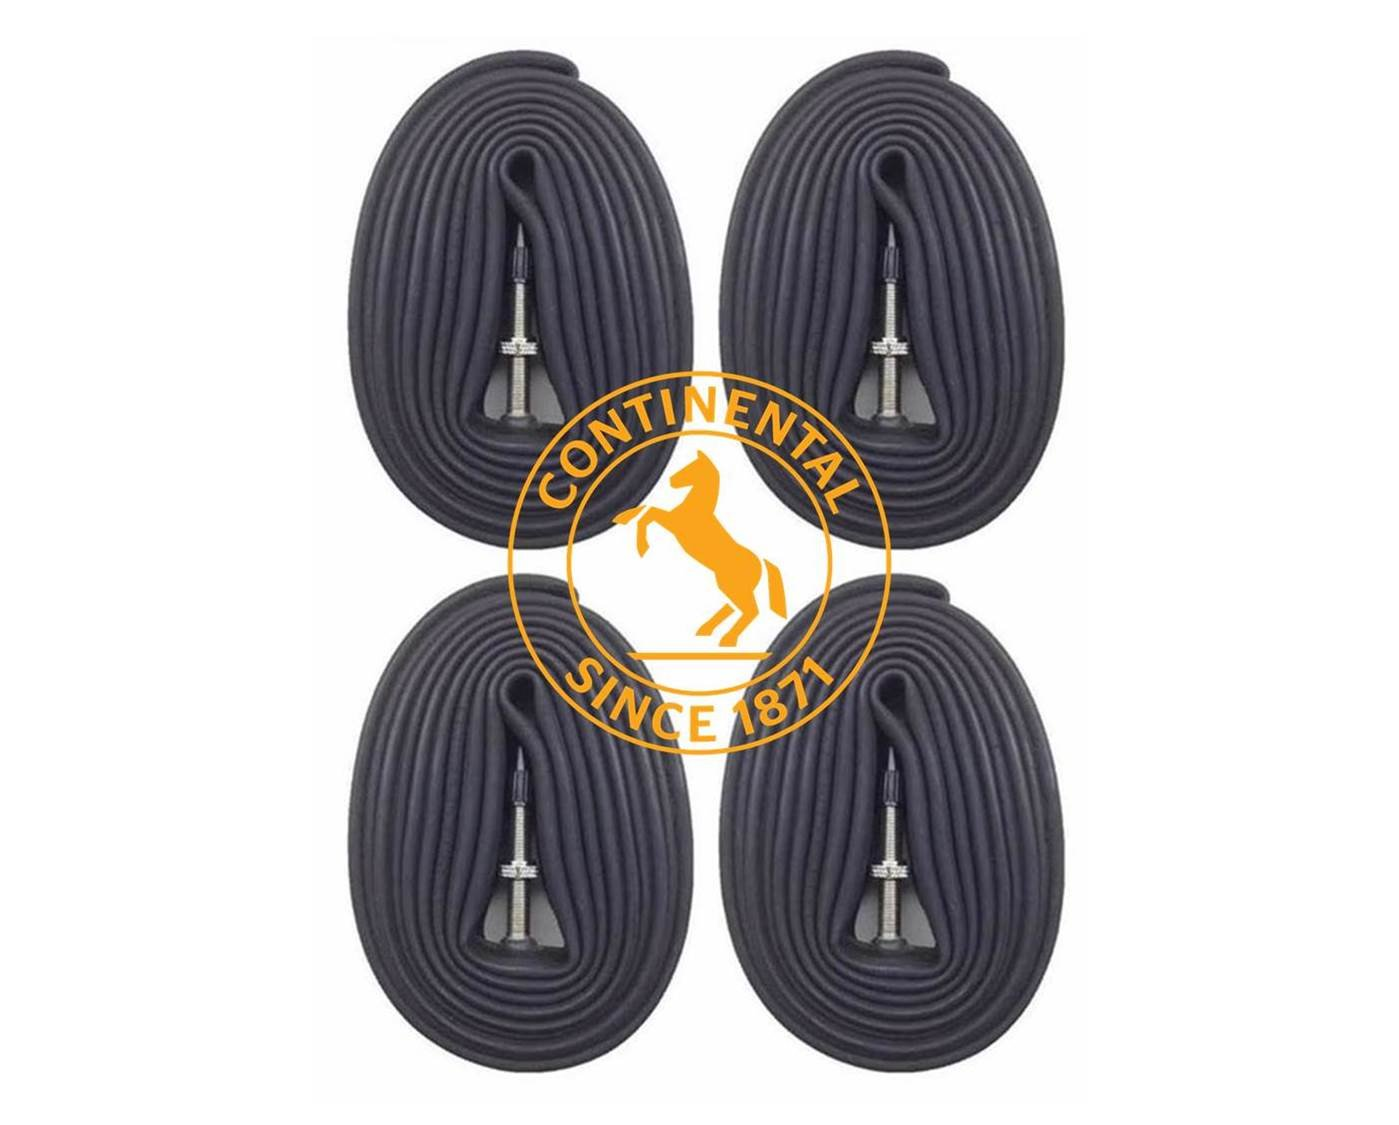 Continental Race 28'' 700x20-25c Bicycle Inner Tubes - 42mm Long Presta Valve - 4 PACK